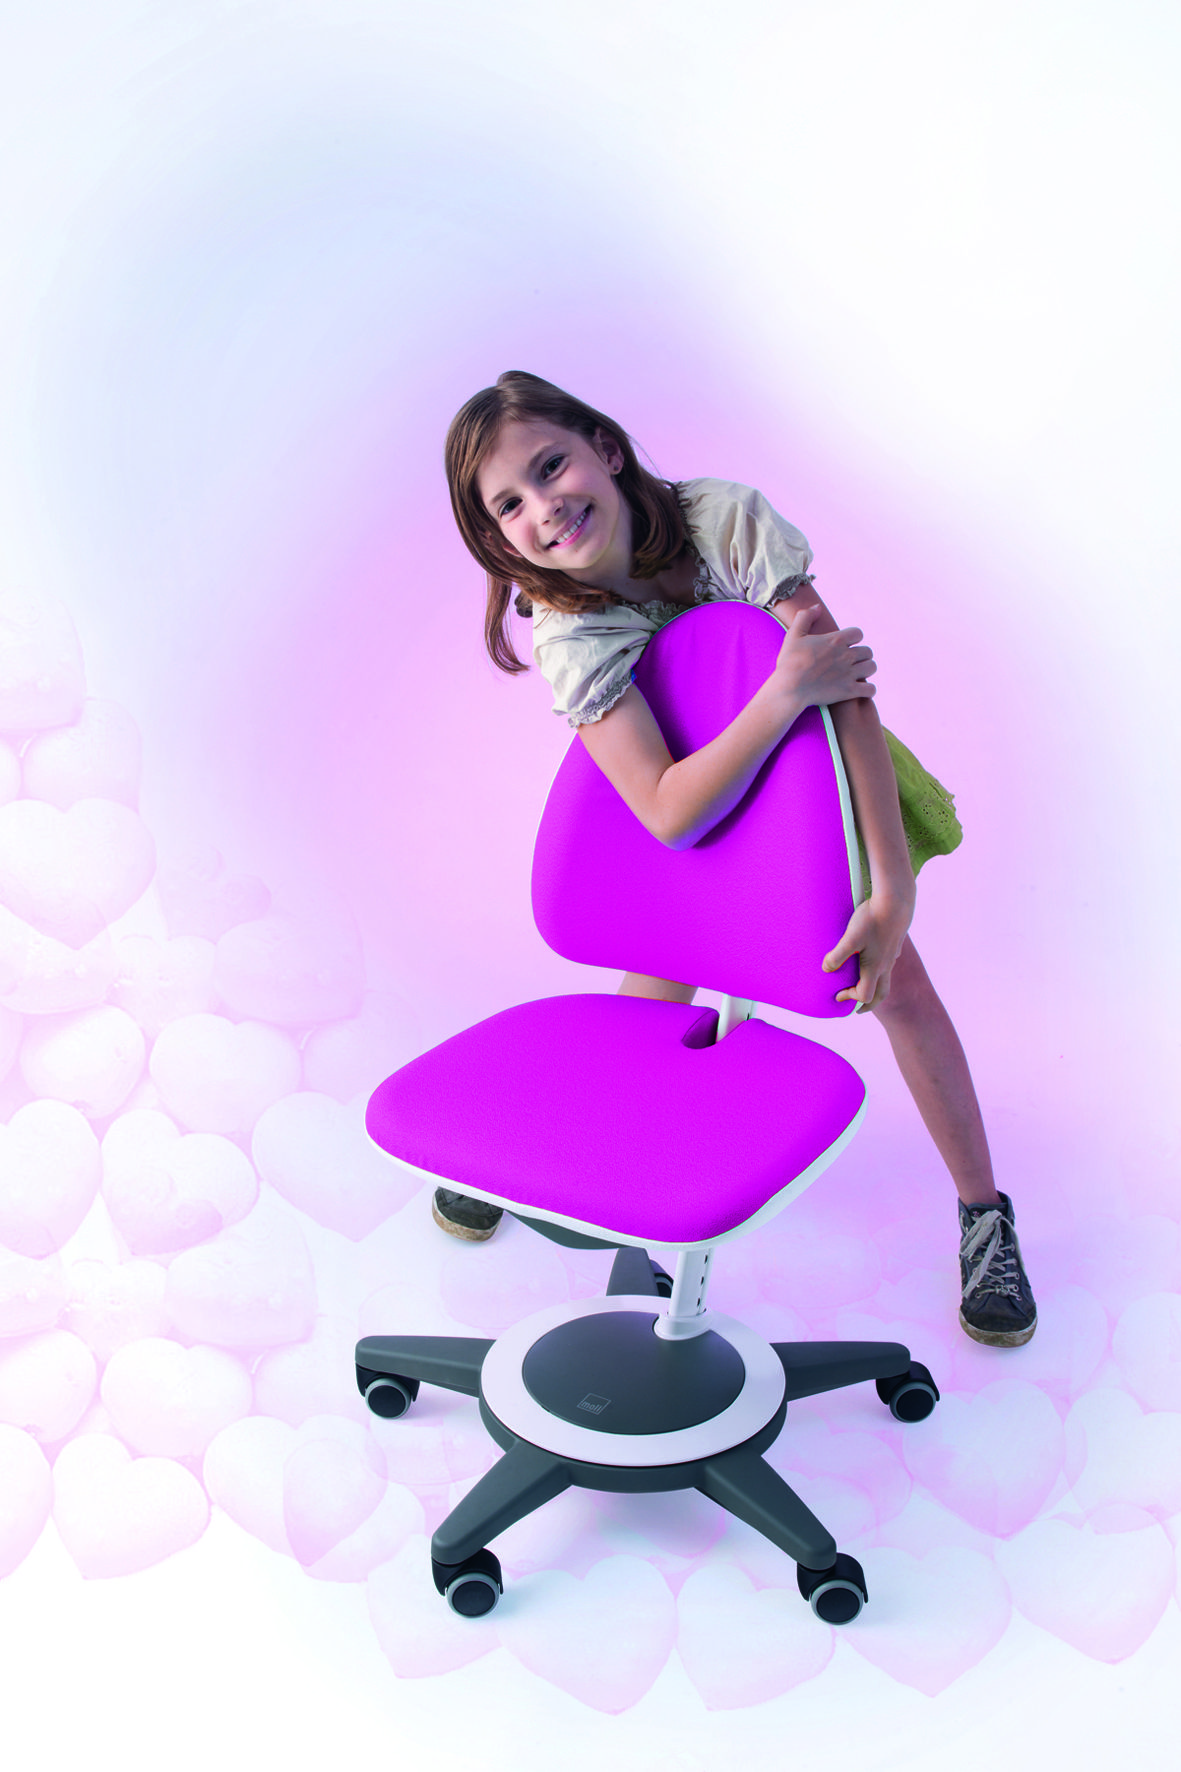 The moll Maximo children chair a classic and leader in kids